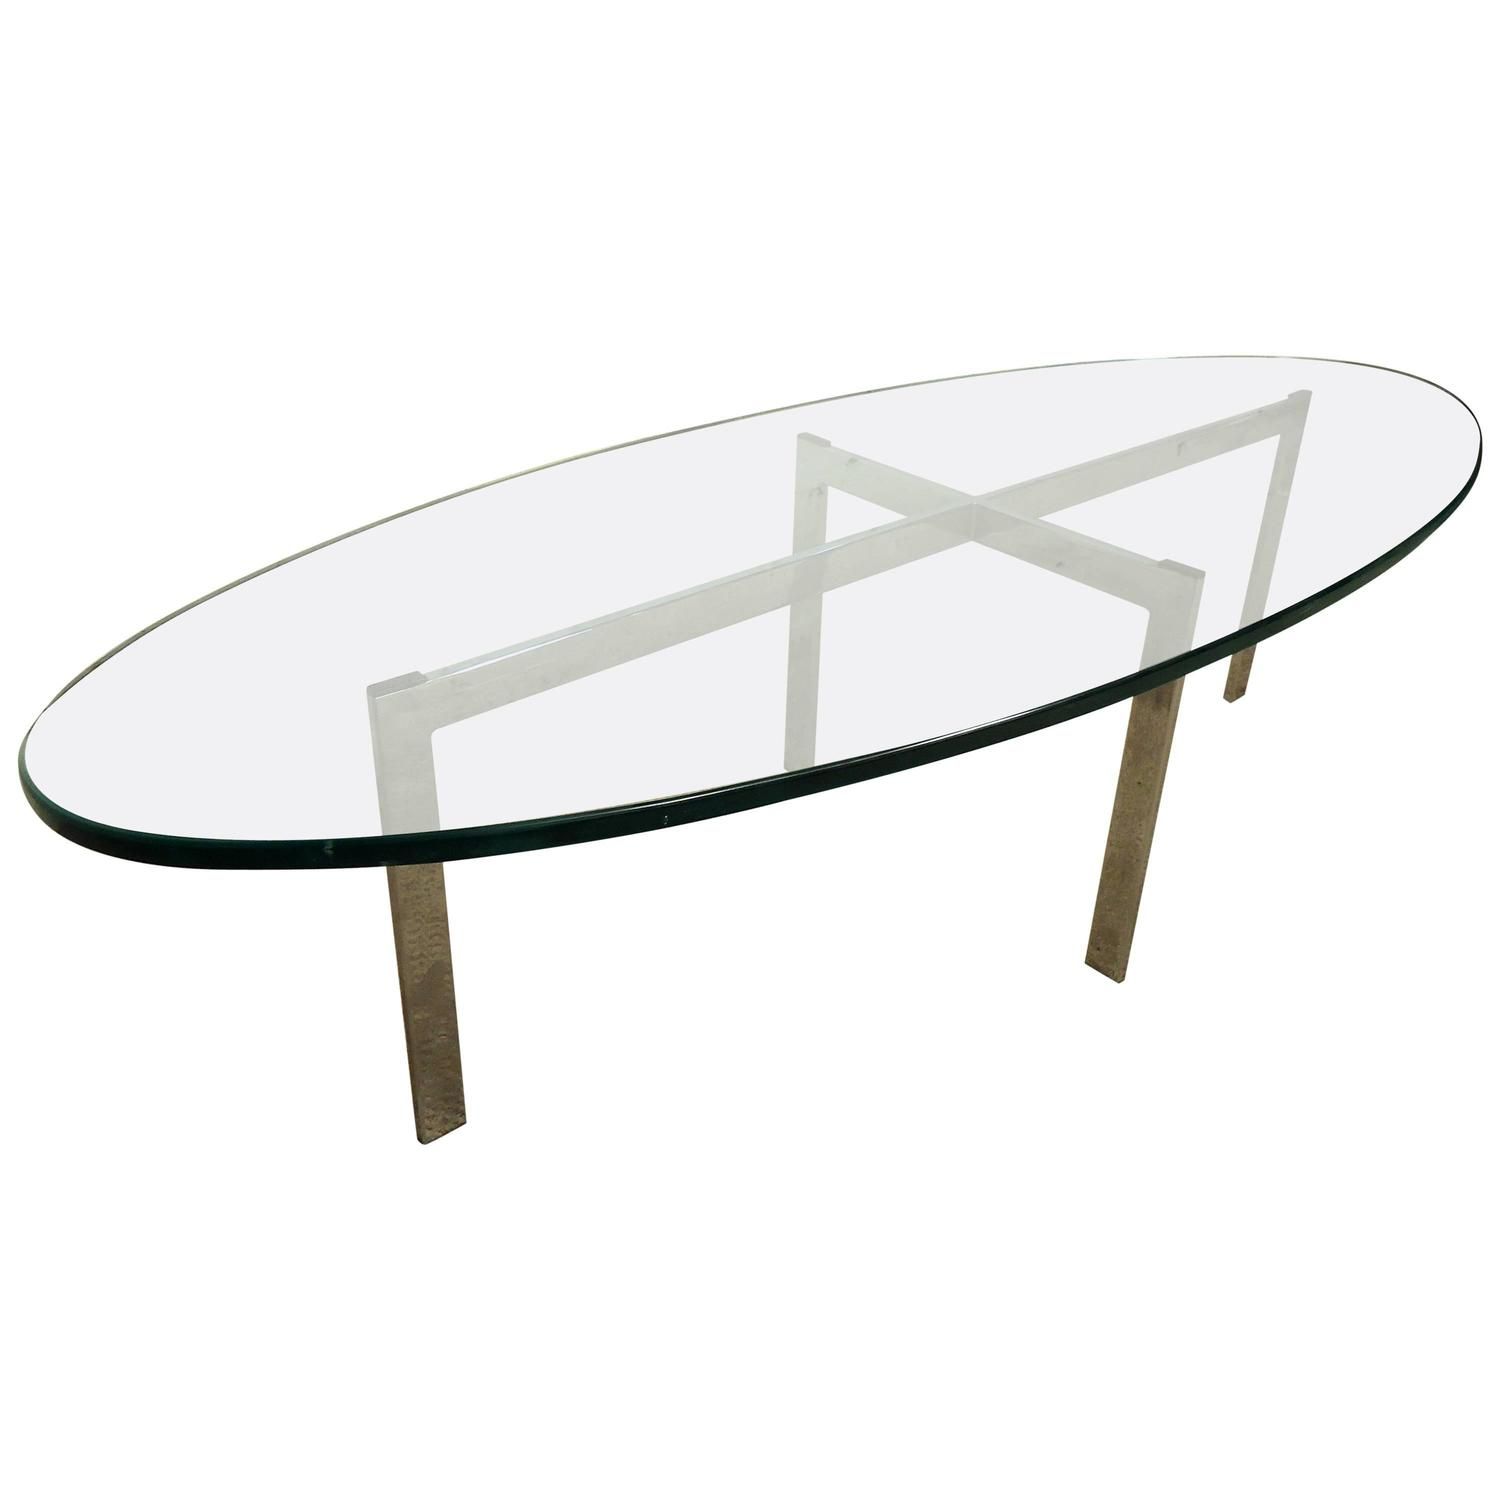 Midcentury Chrome And Glass Coffee Table At 1stdibs